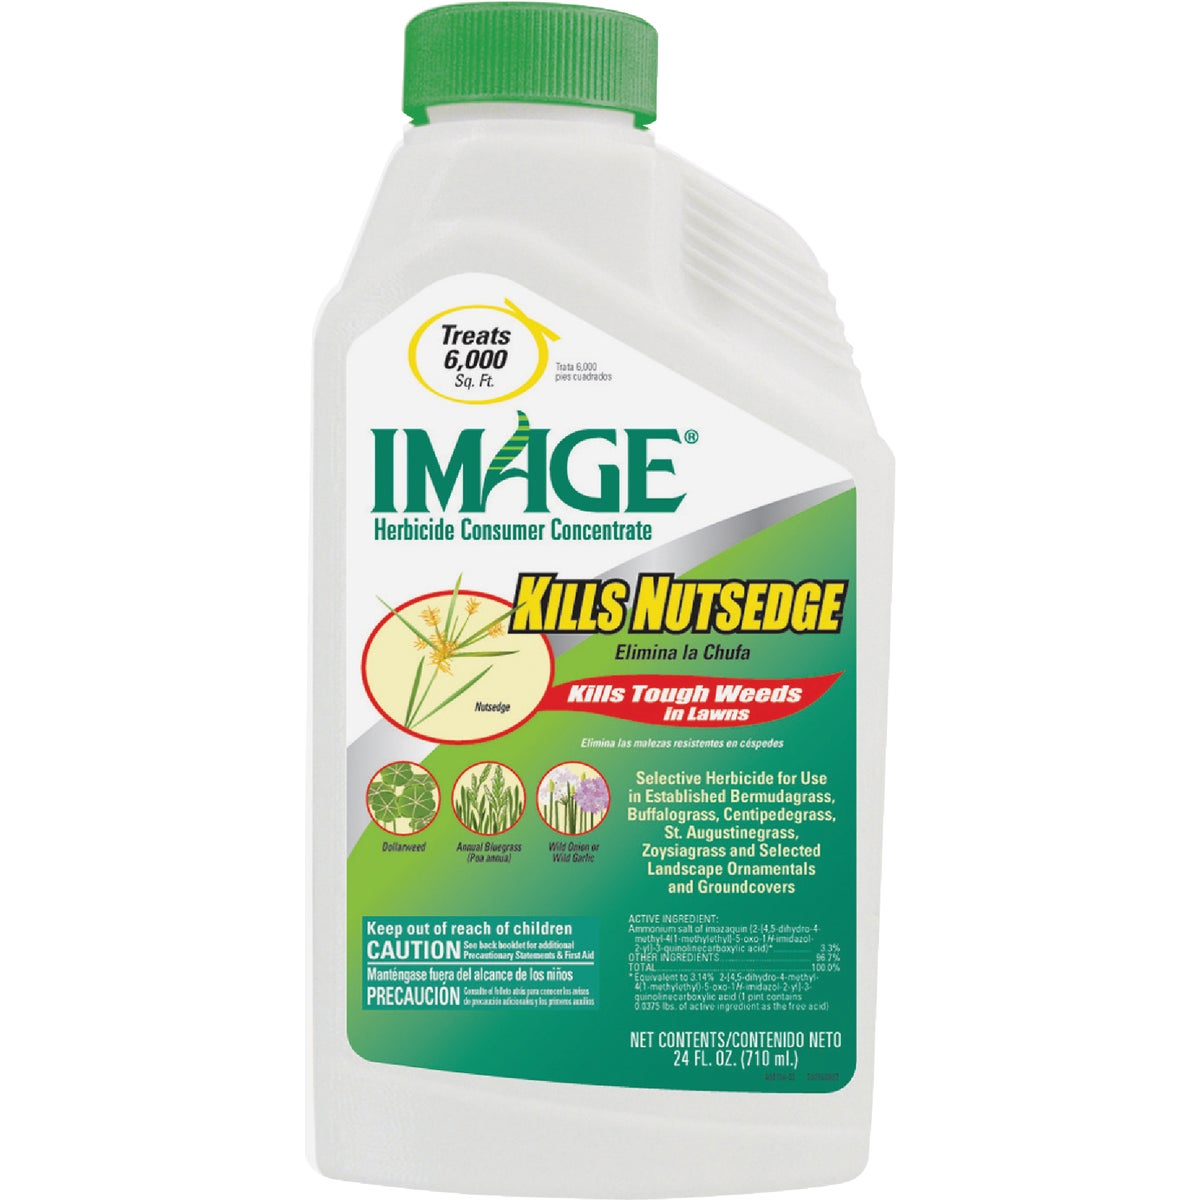 CONC WEED CONTROL IMAGE - 100099405 by Excel Marketing